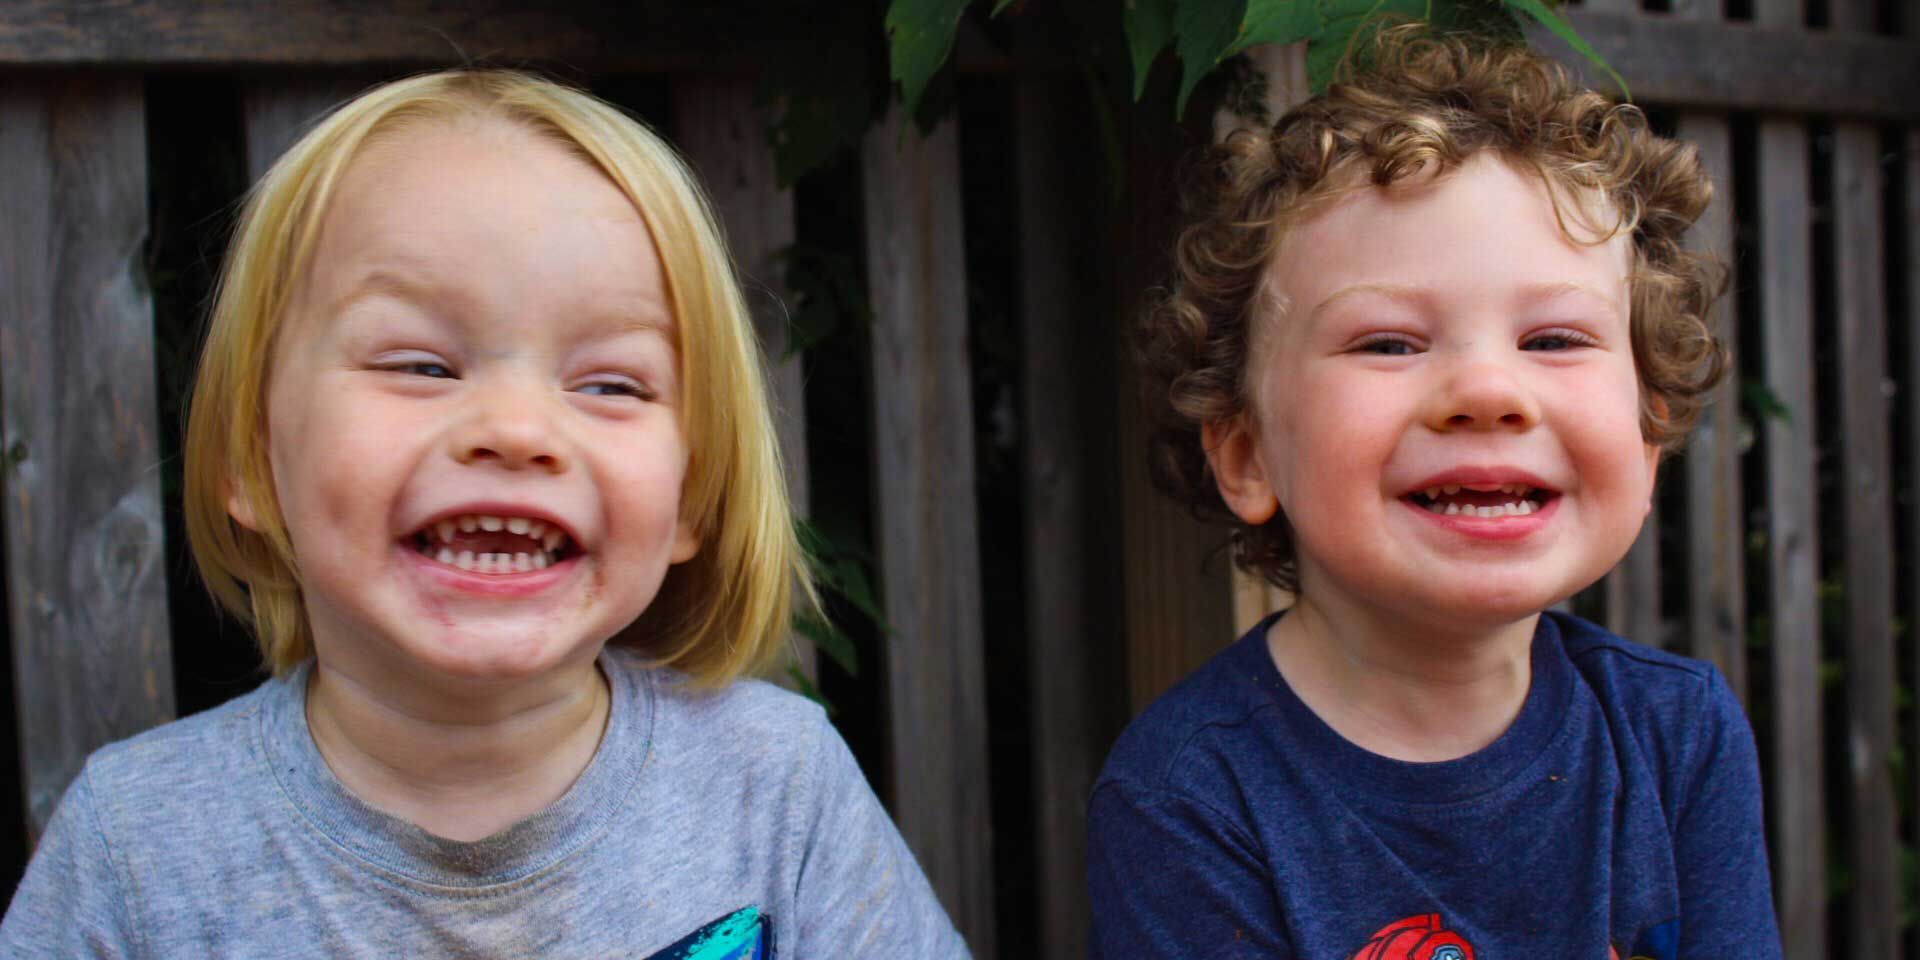 Two toddler boys laughing